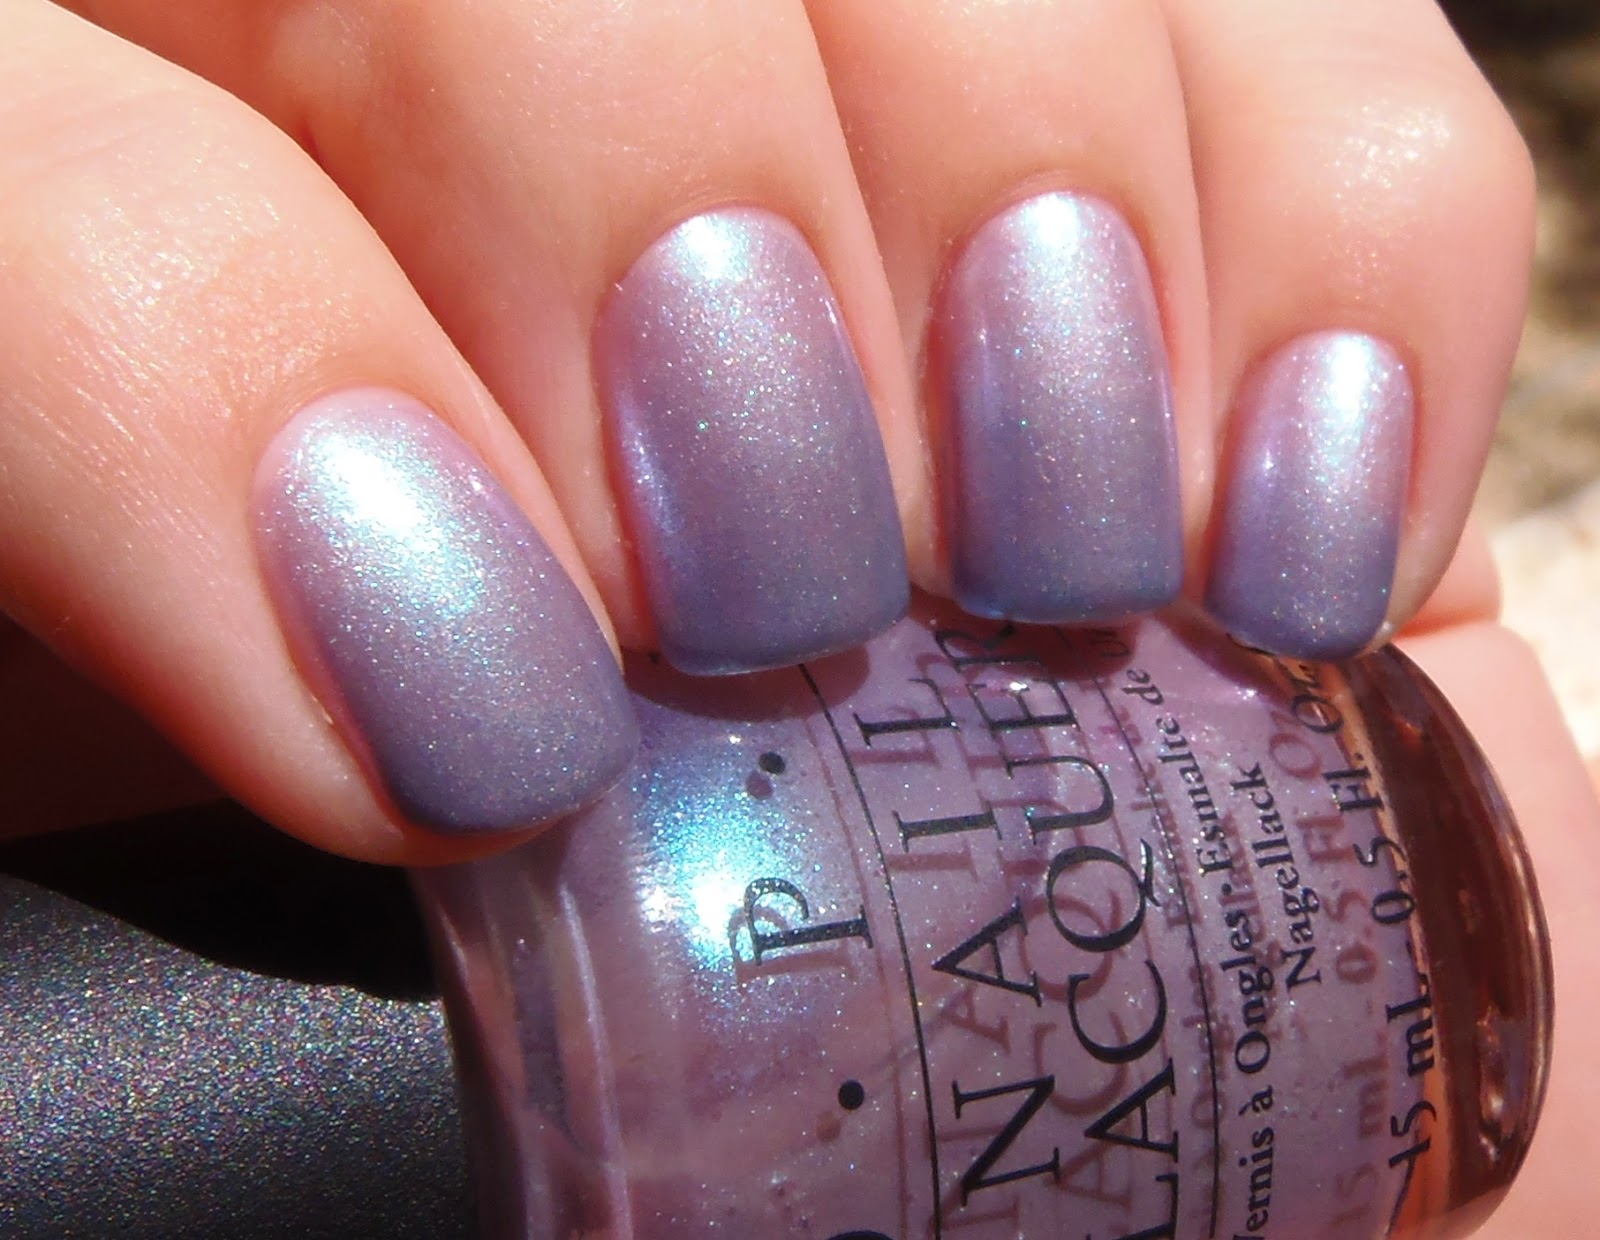 sparkly vernis: opi yokohama twilight is a sheer light pink with